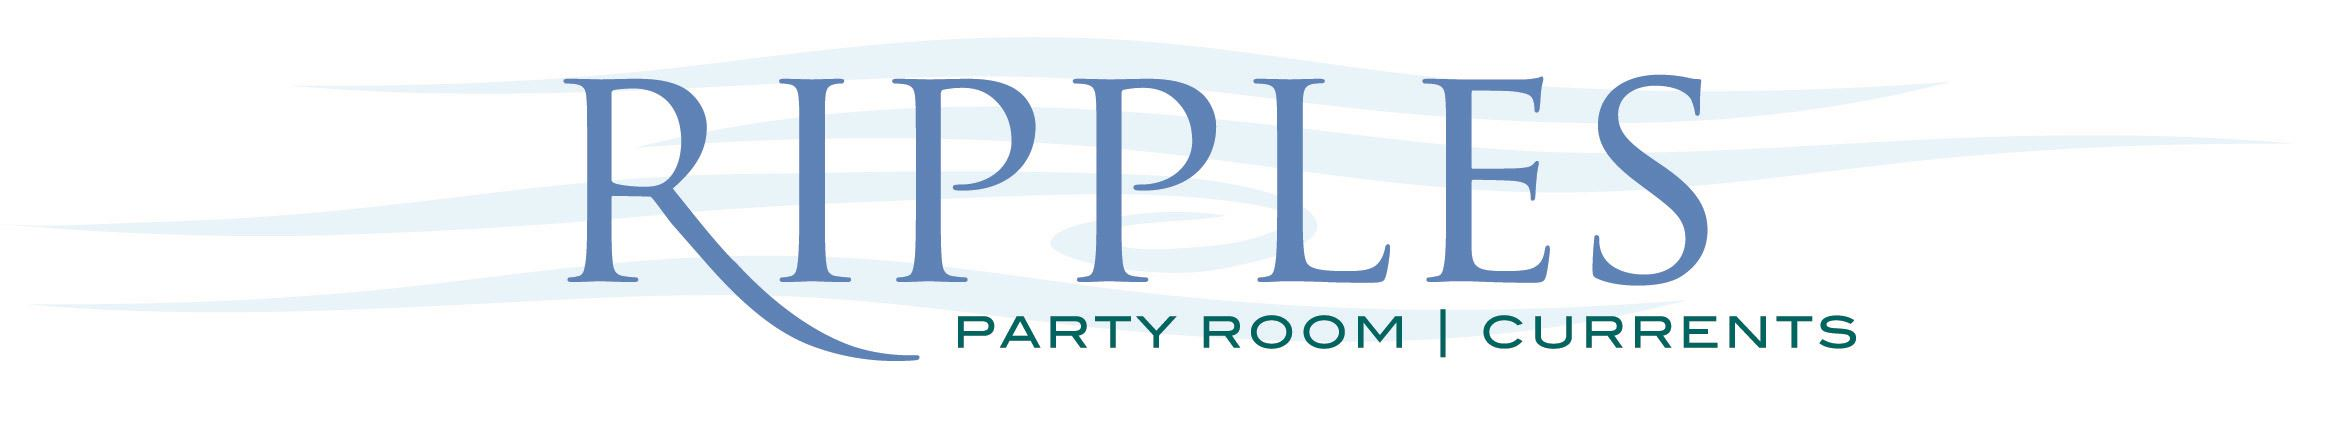 Ripples Party Room logo